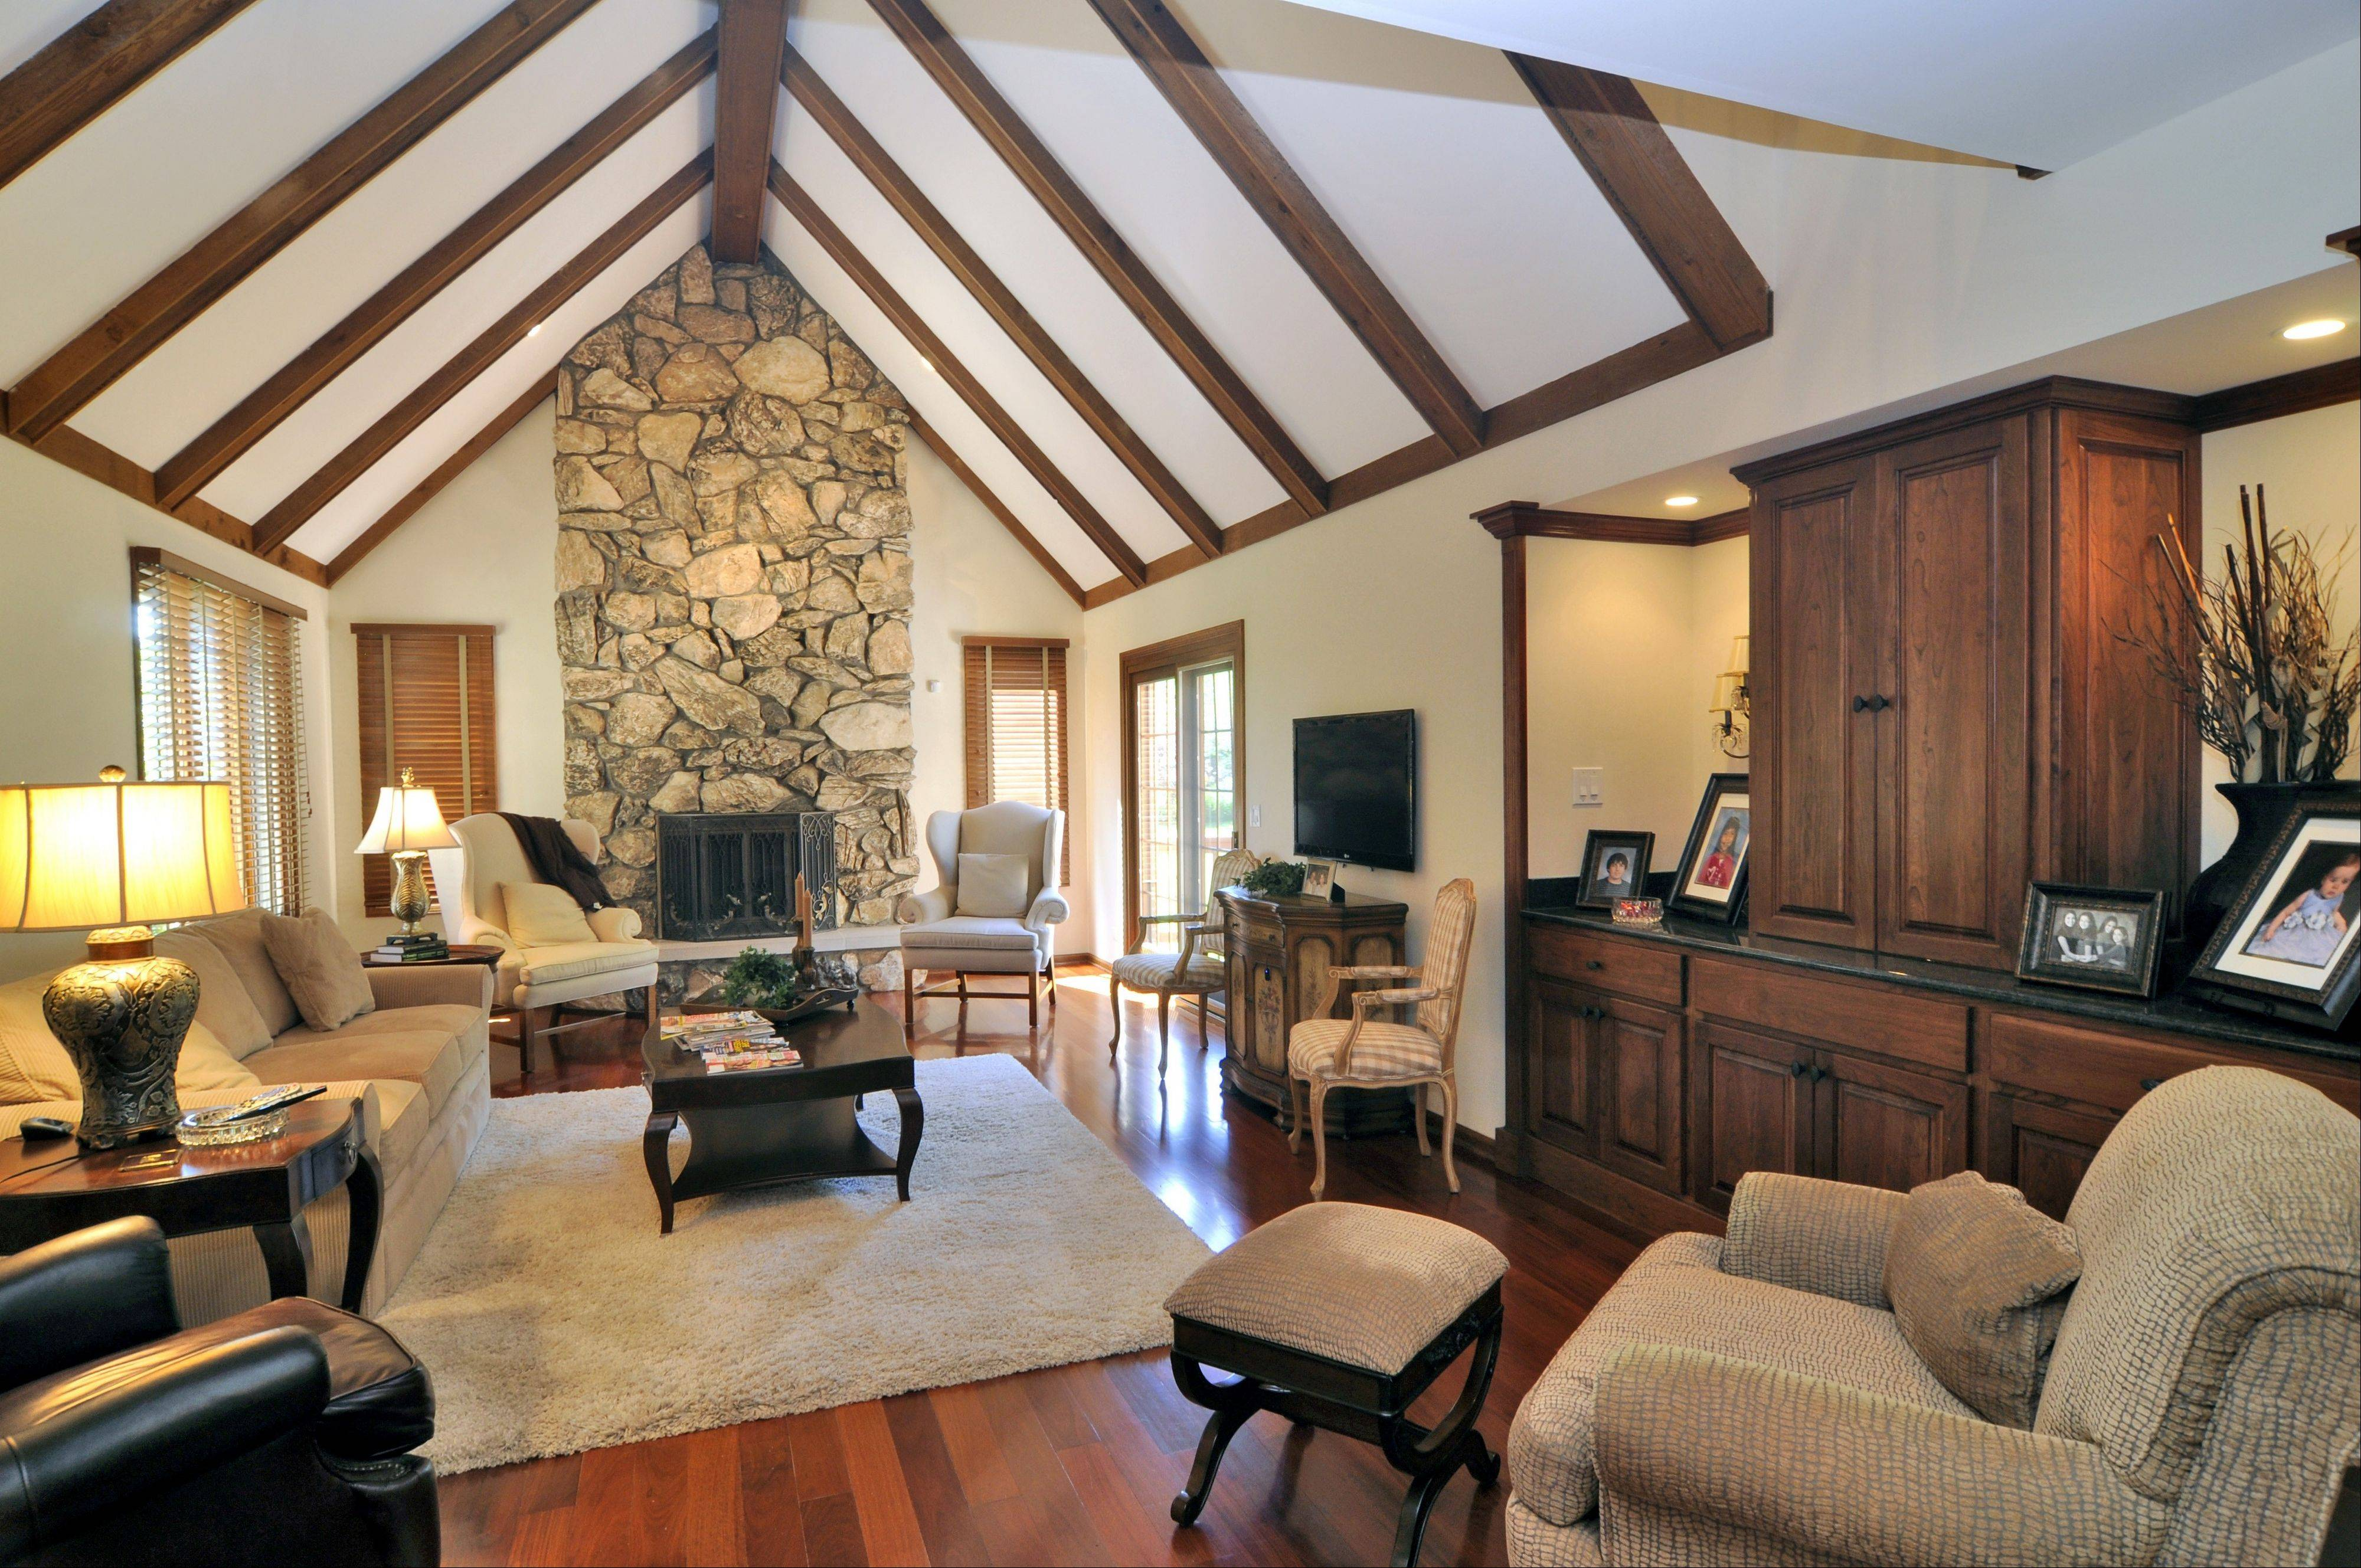 The family room features Brazilian cherry floors, a large stone fireplace and vaulted ceiling.